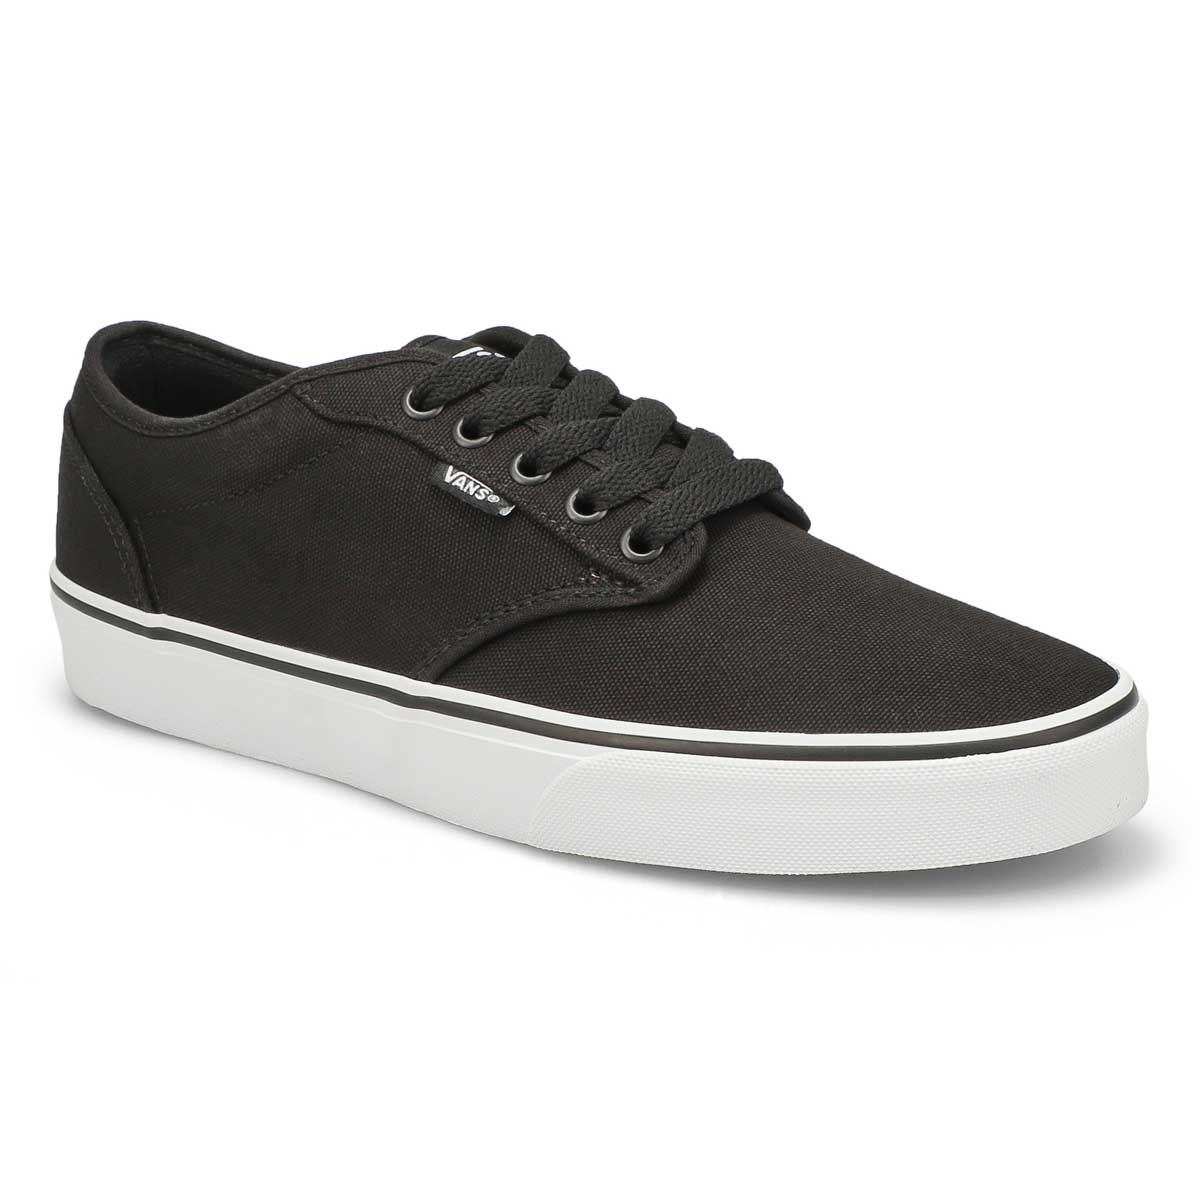 Mns Atwood black canvas lace up sneaker